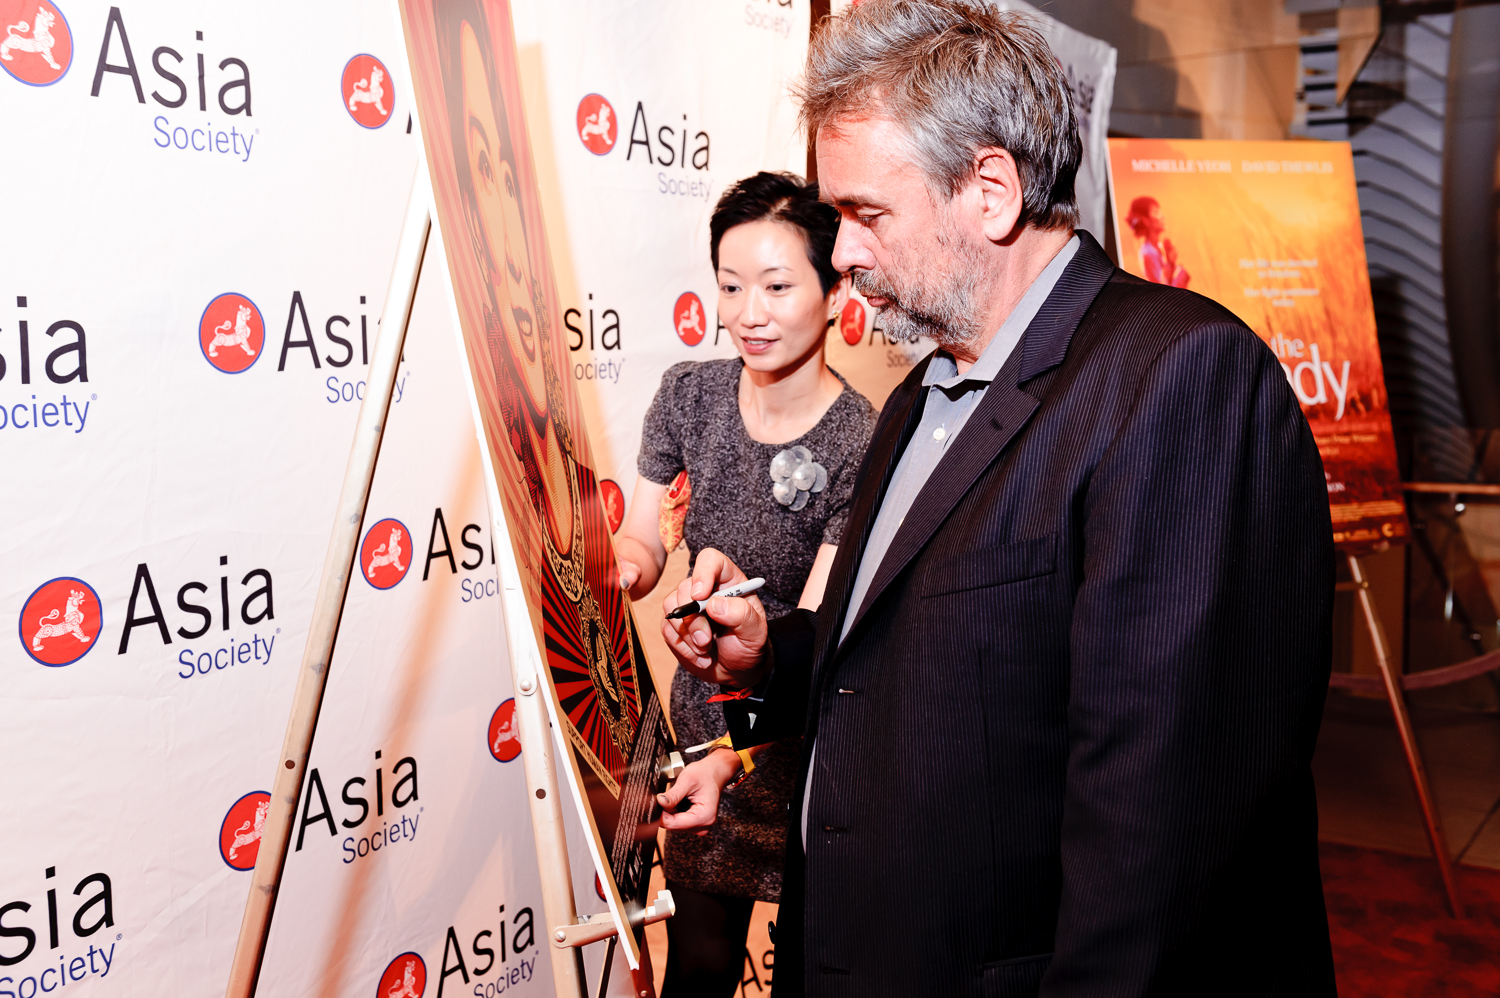 20111211_the_lady_screening_53.jpg